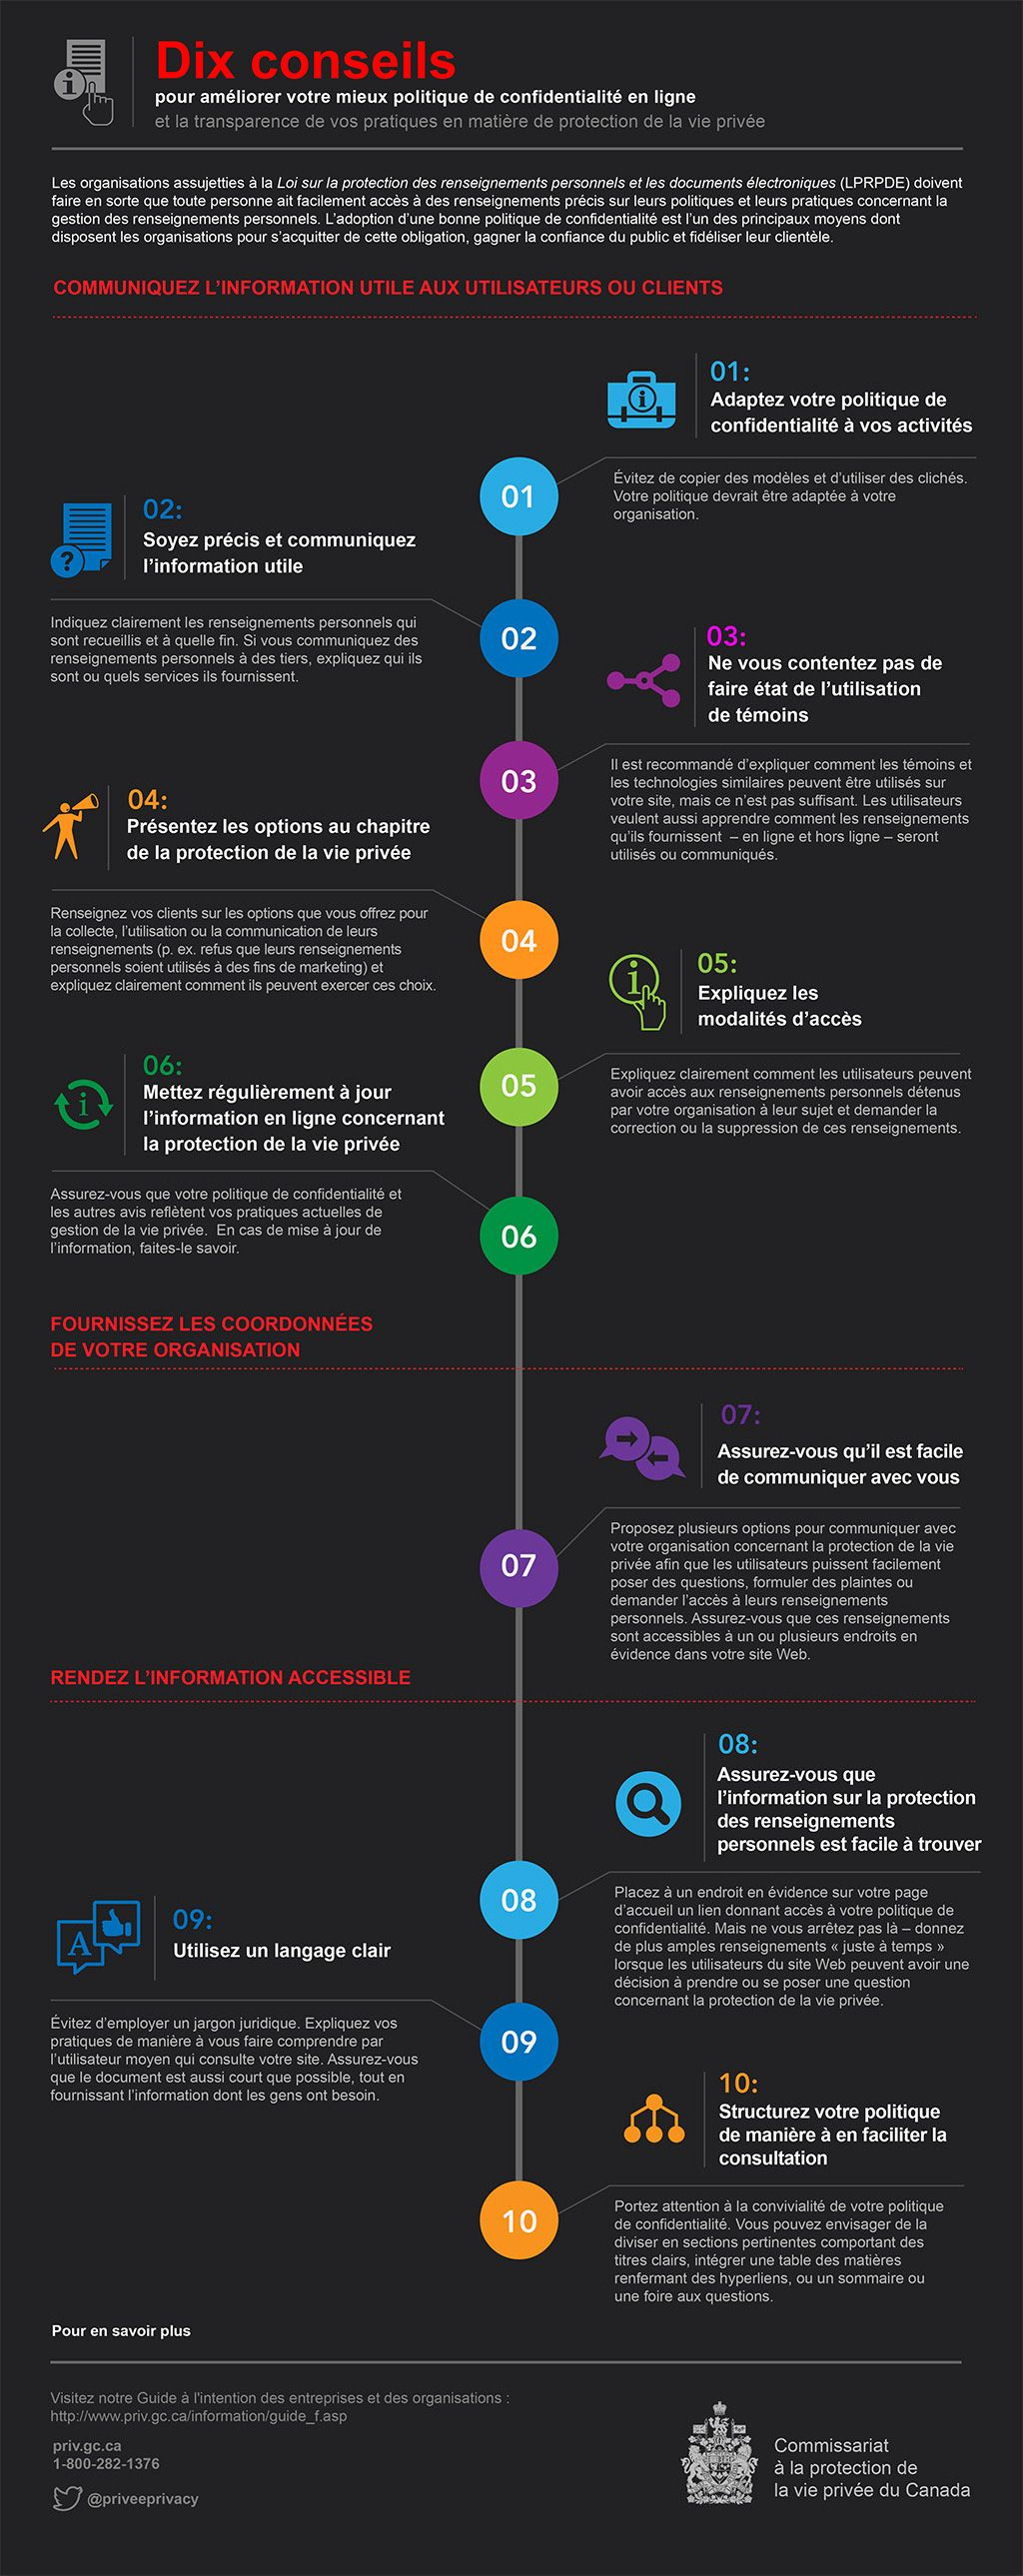 Privacy Commissioner of Canada Infographic www